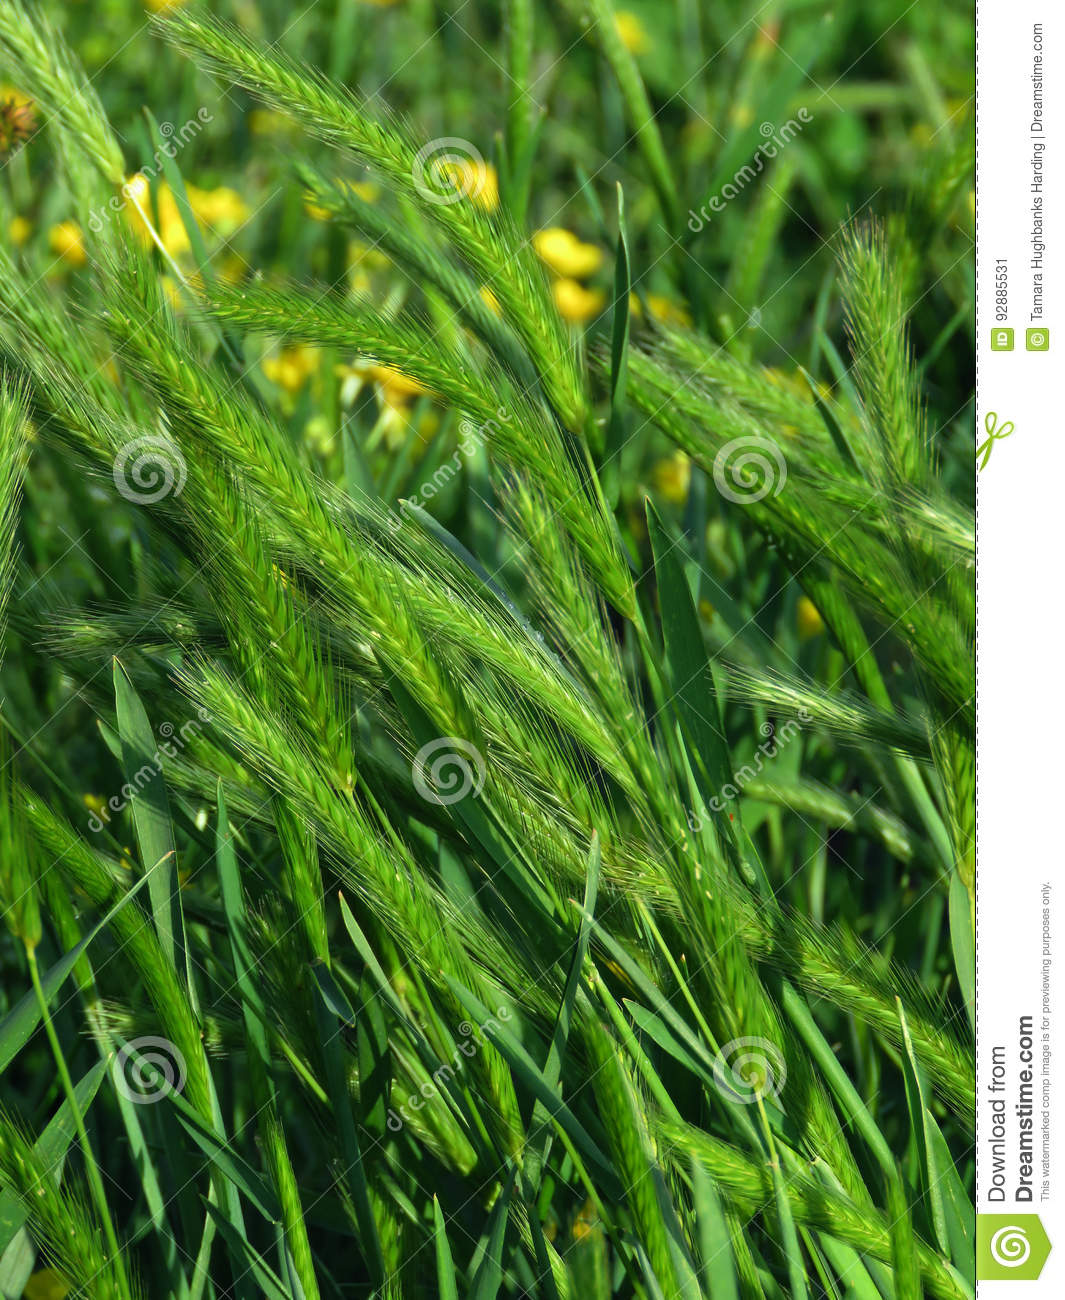 Pasture grass, closeup, with yellow flowers